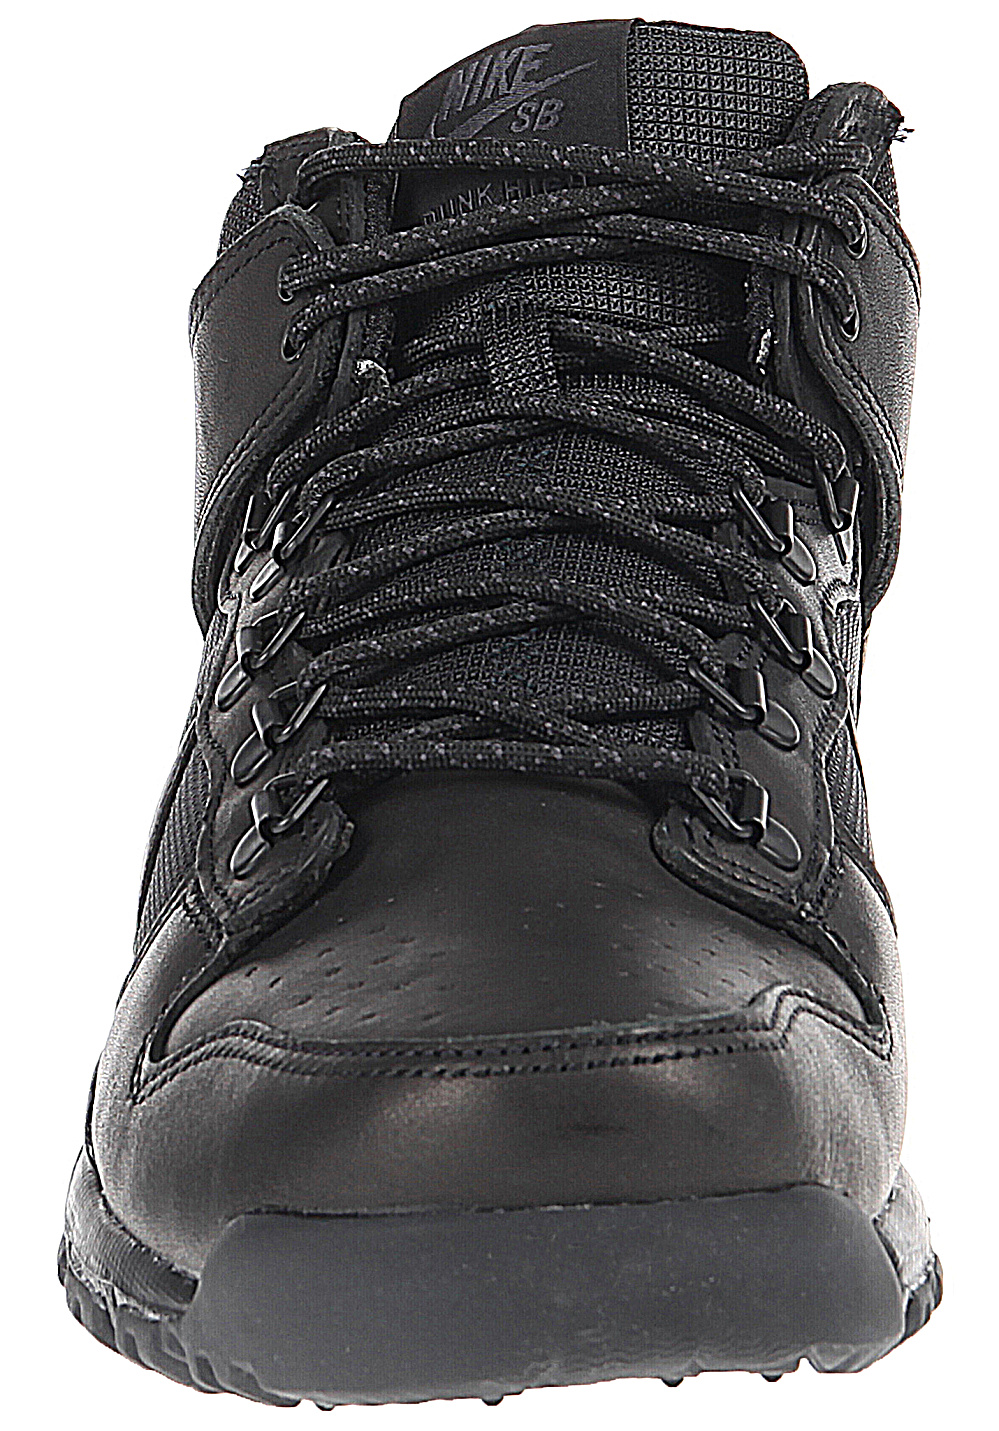 official photos 7acfd 4364b NIKE SB Dunk High - Boots for Men - Black